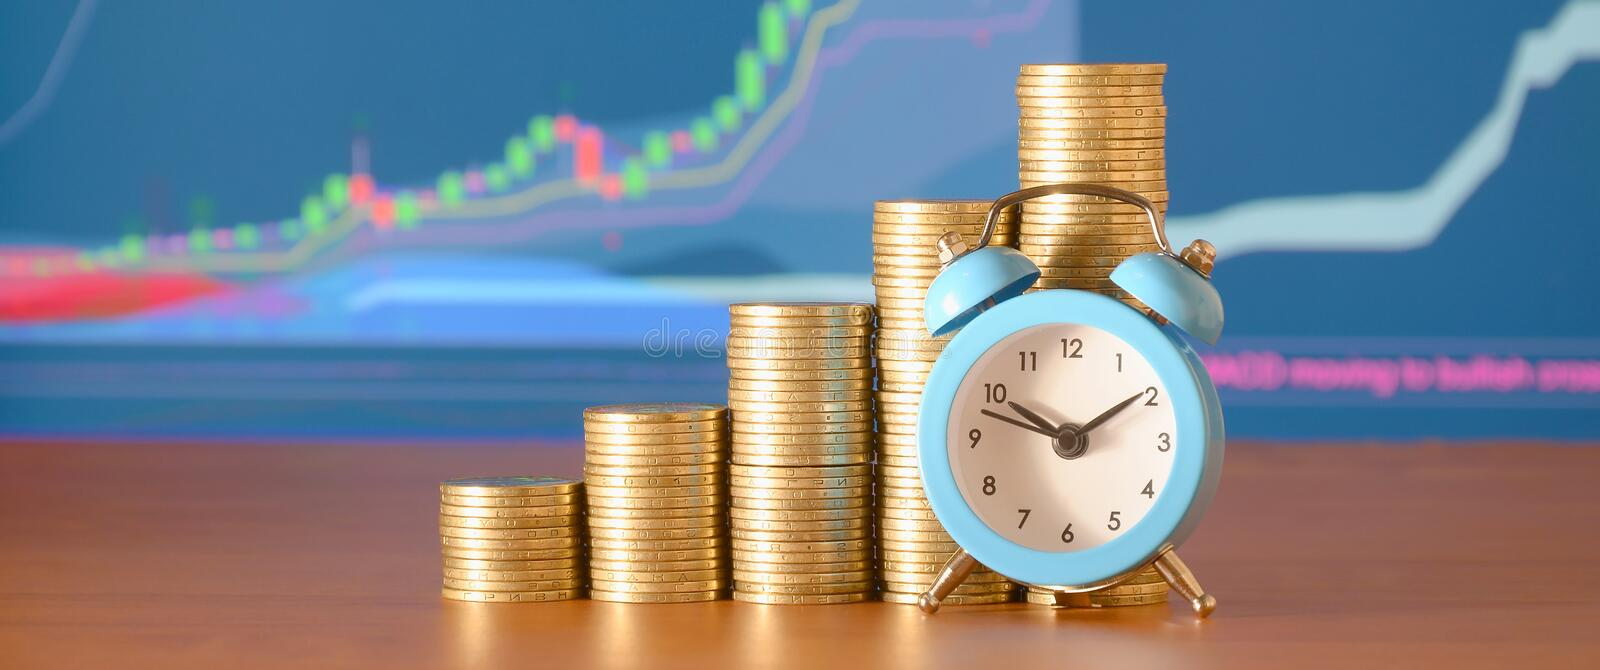 Time for savings money concept, banking and business idea. Alarm clock and Money coin stacks in grow graph. Finance sustainable development and economic growth stock photo